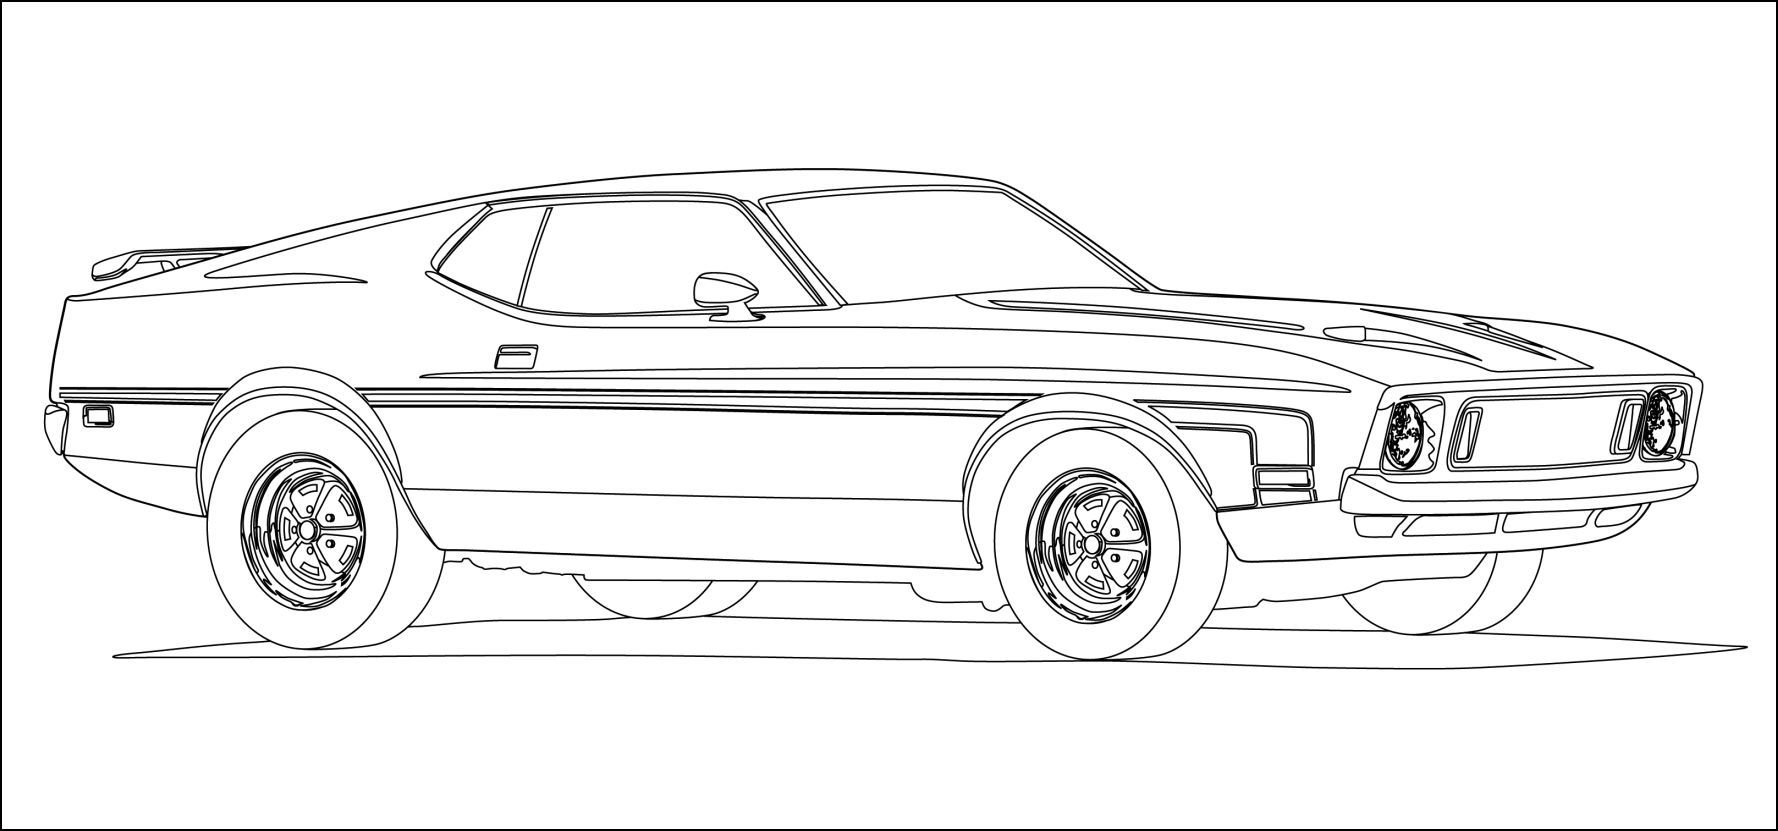 mustang race car coloring pages ford mustang gt car coloring pages best place to color race mustang coloring car pages